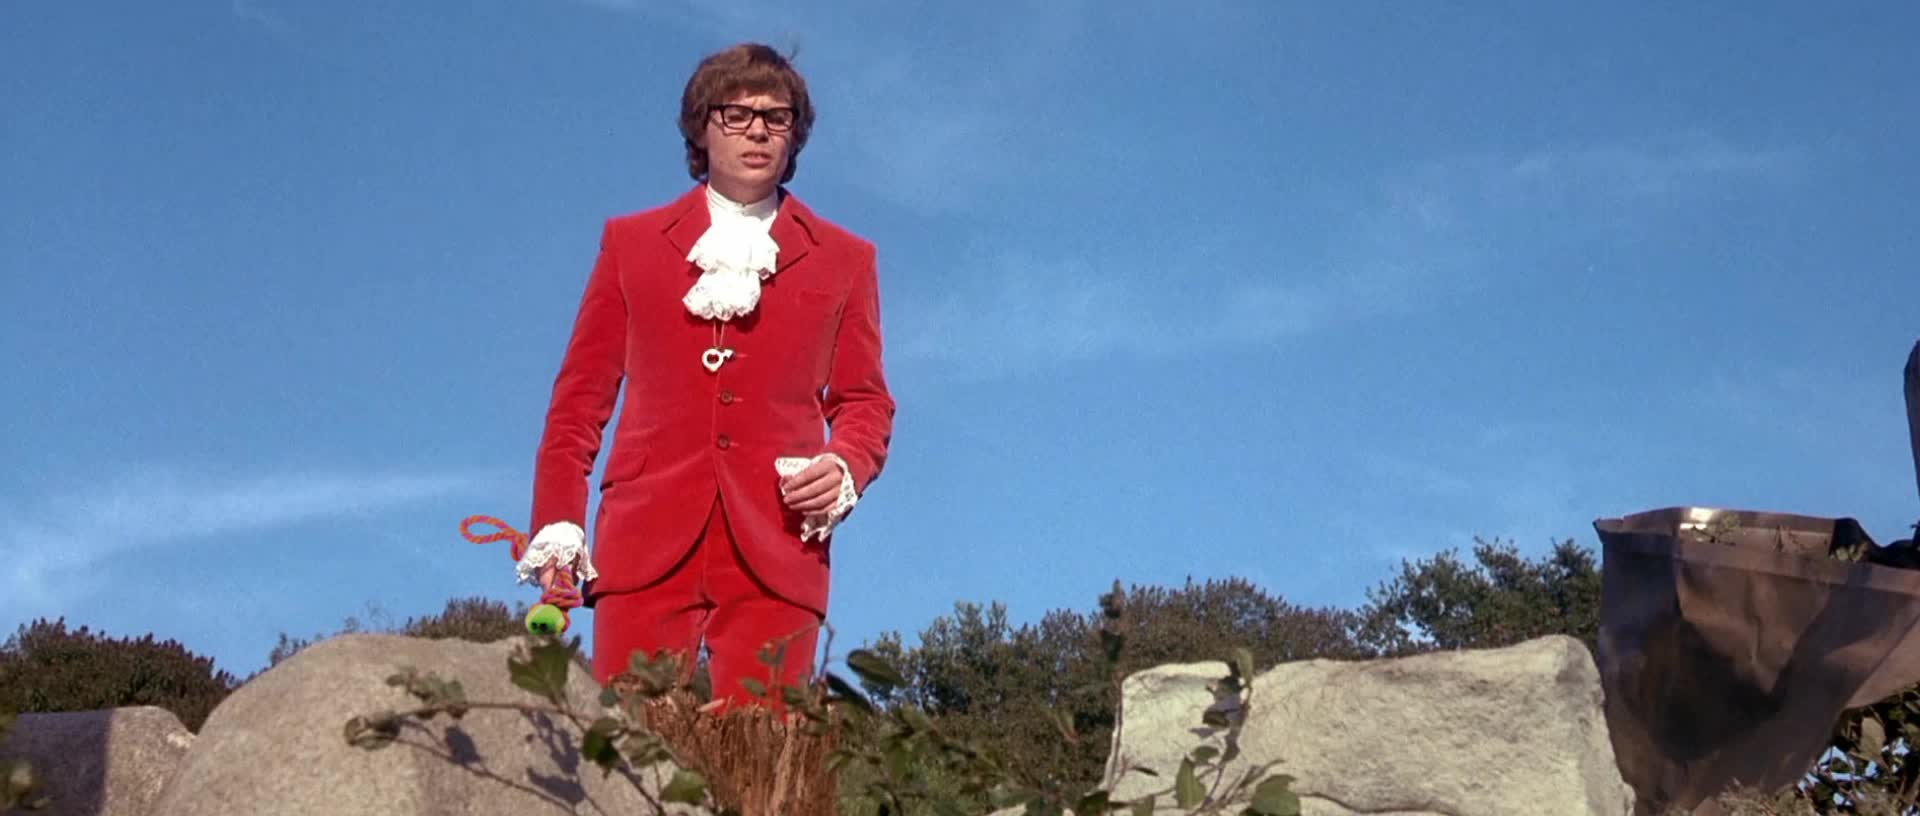 Austin powers - Waiting for your dog GIFs